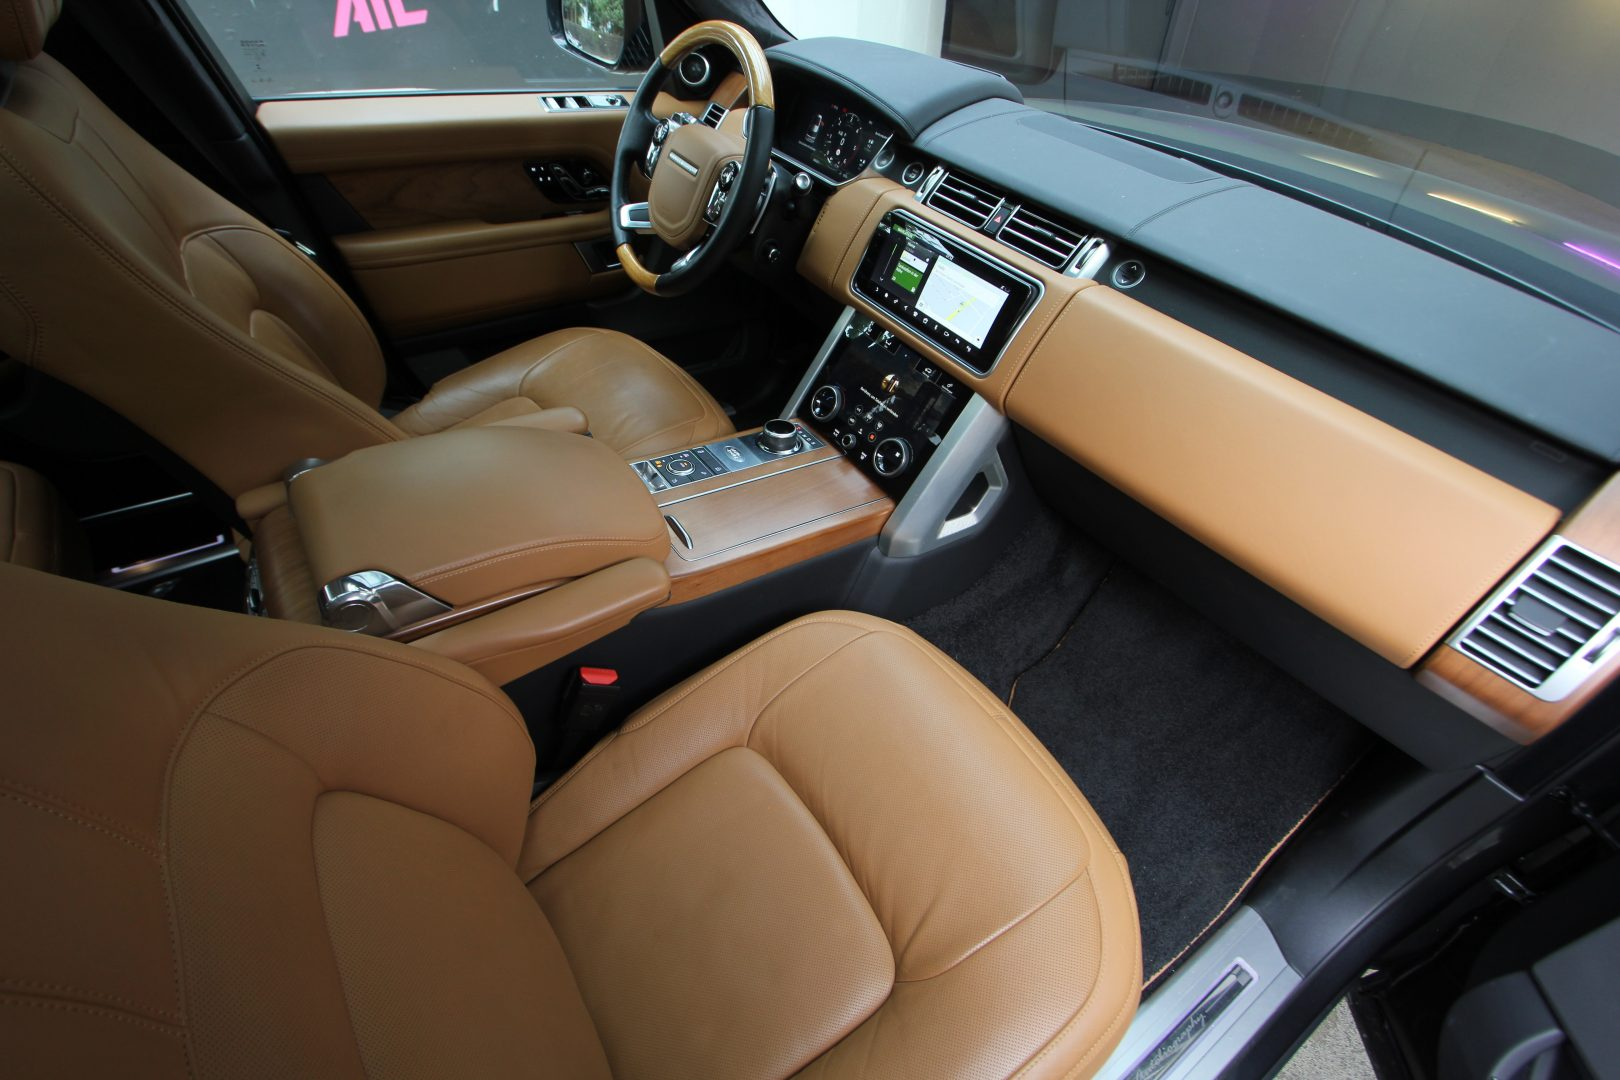 AIL Land Rover Range Rover SDV8 Autobiography 15